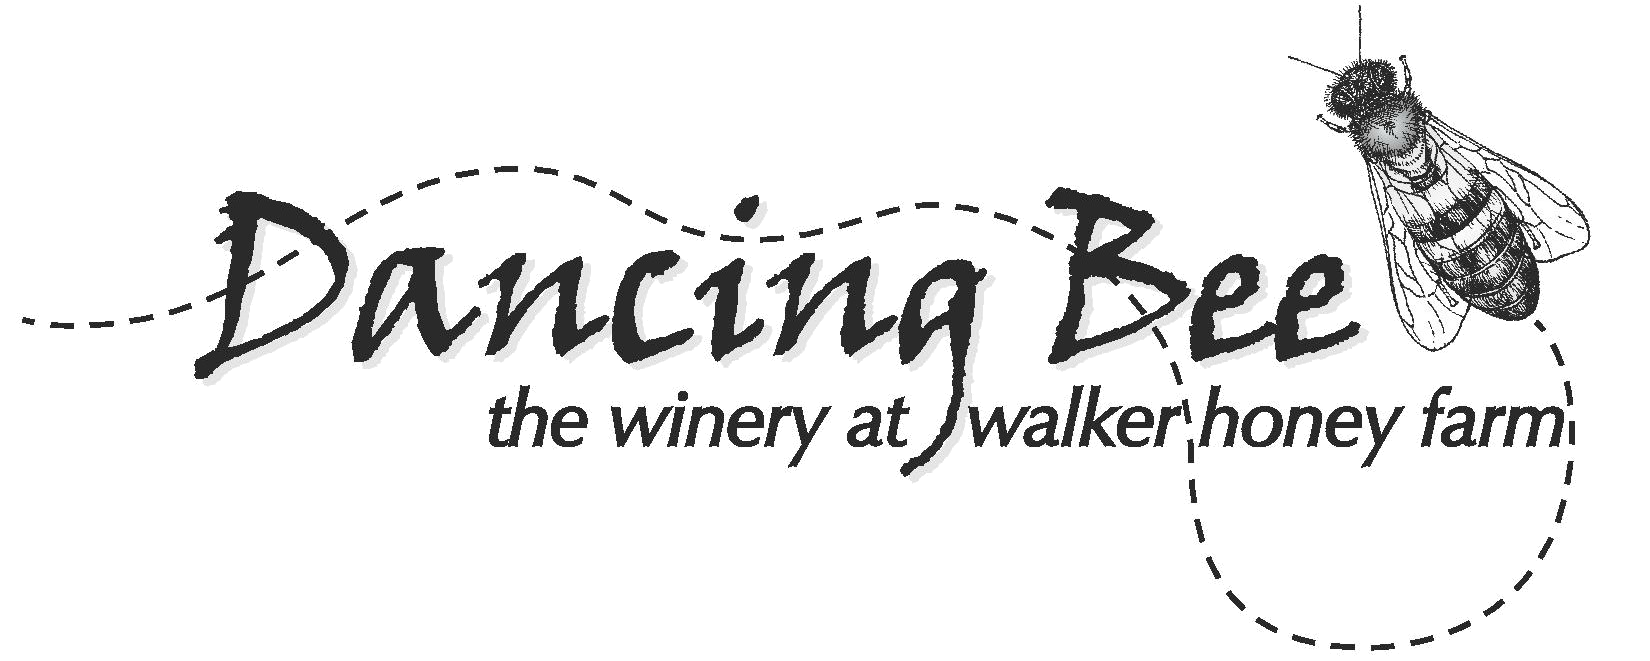 dancing-bee-winery-transparent-background-logo.png